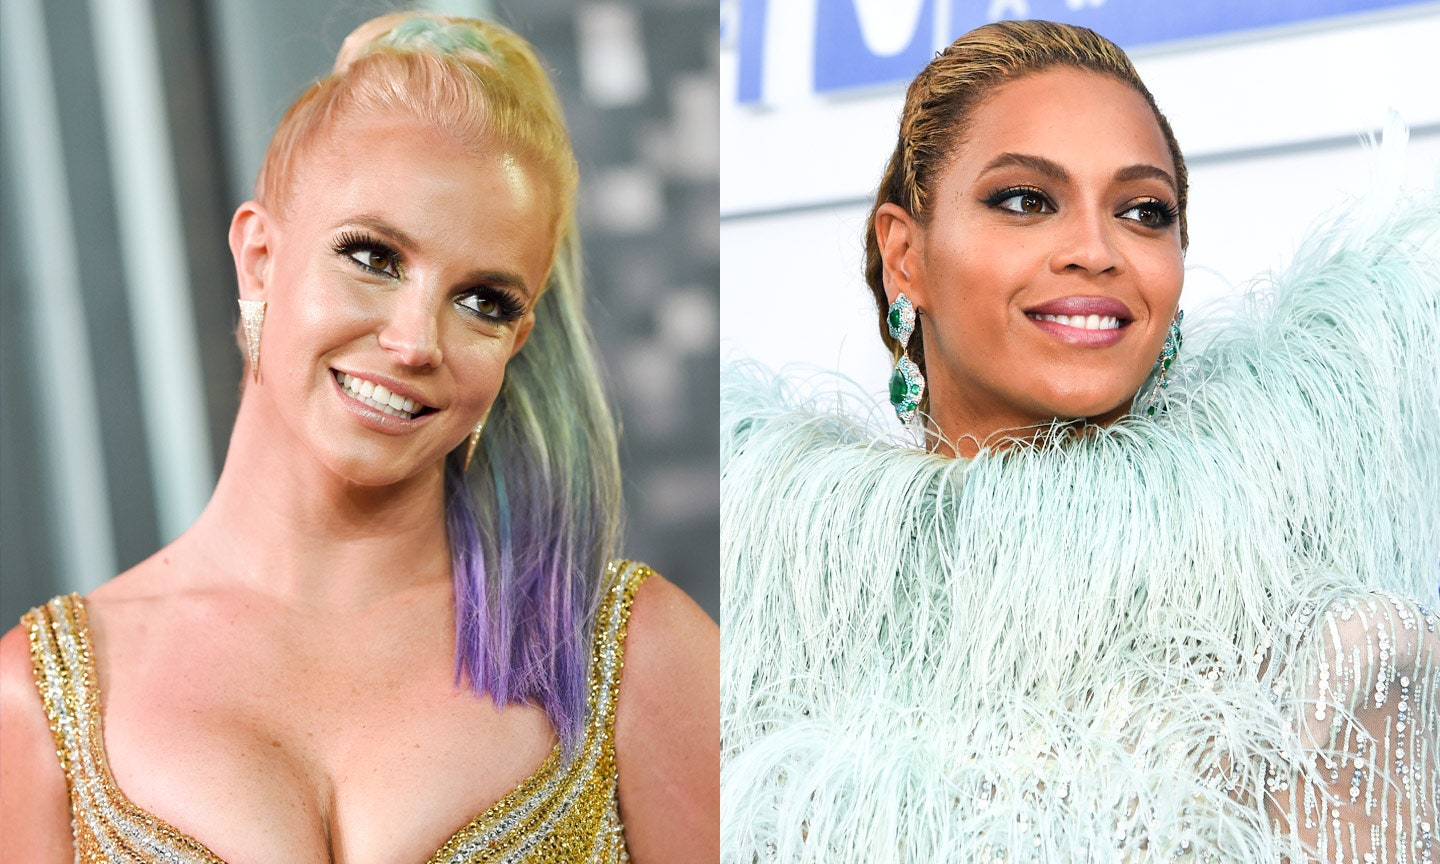 britney-spears-reportedly-never-intended-to-disrespect-beyonce-when-she-referred-to-herself-as-the-queen-b